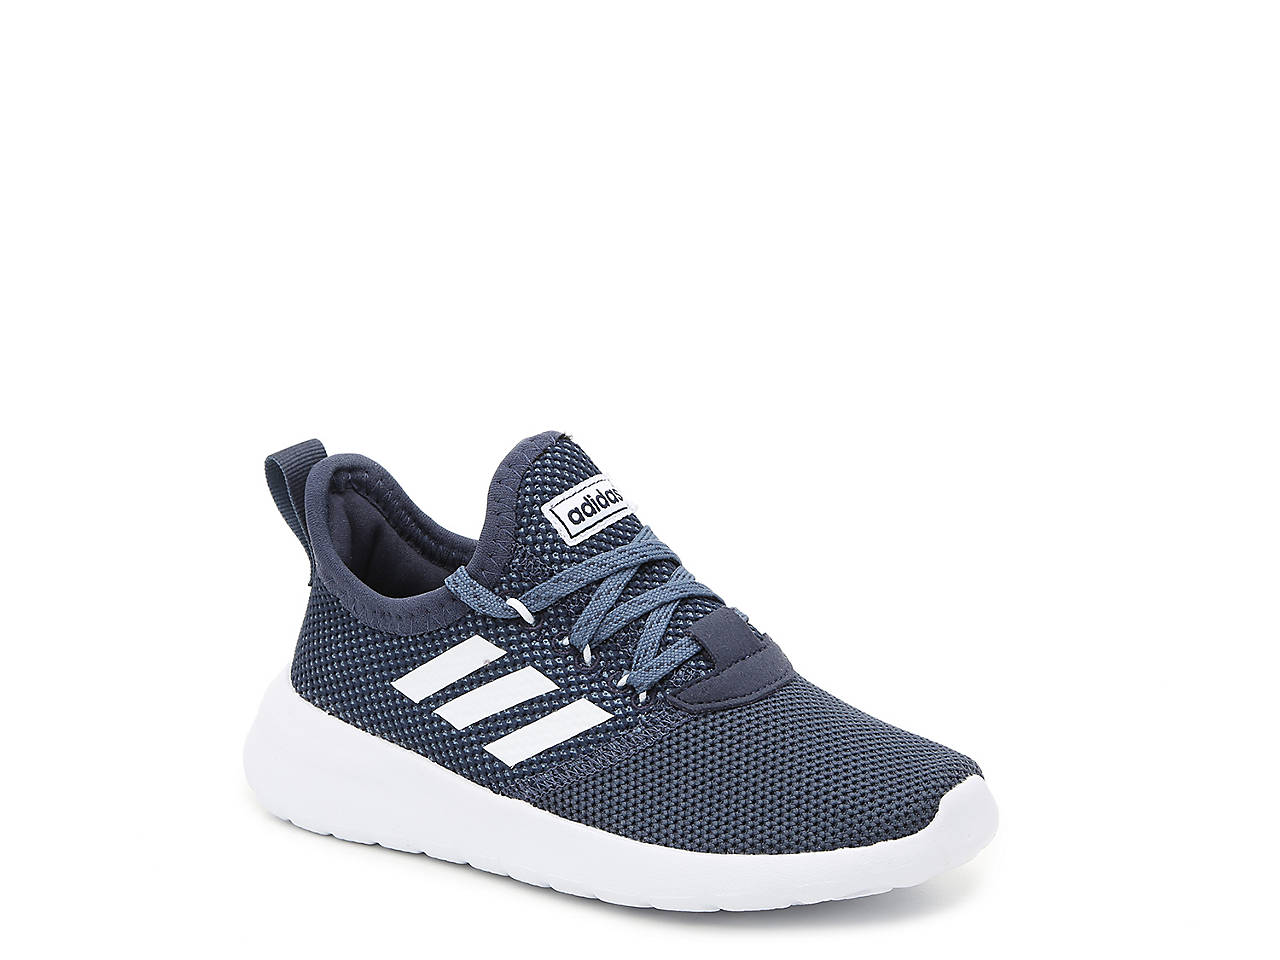 38675593fb7 adidas Lite Racer RBN Toddler & Youth Sneaker Kids Shoes | DSW